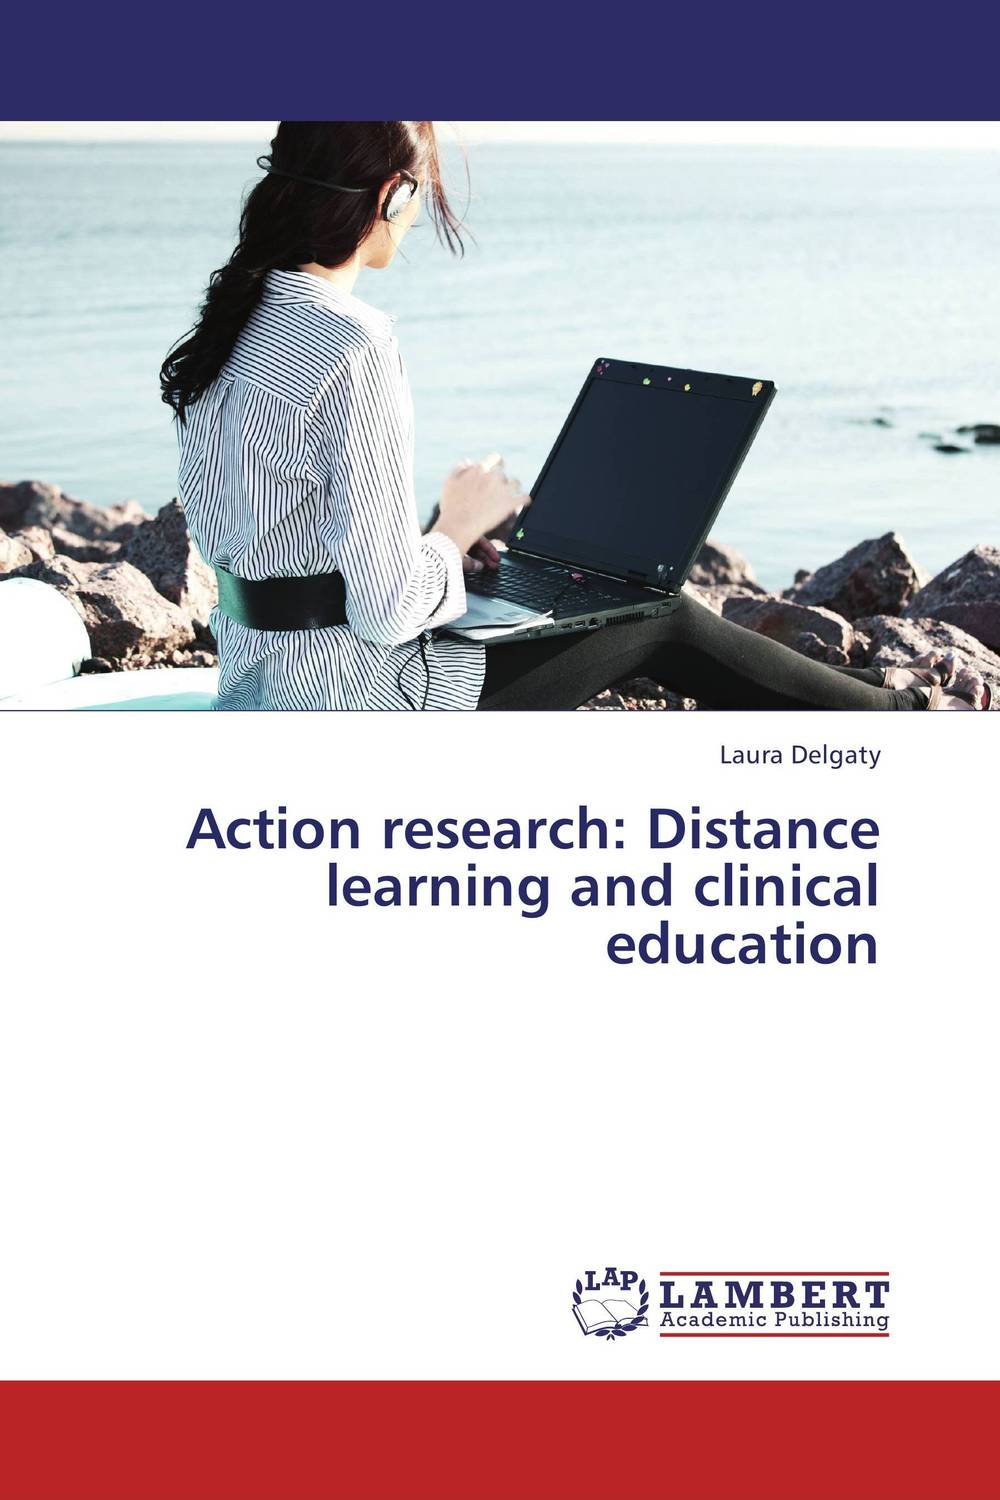 Action research: Distance learning and clinical education equine facilitated learning psychotherapy existential ipa research